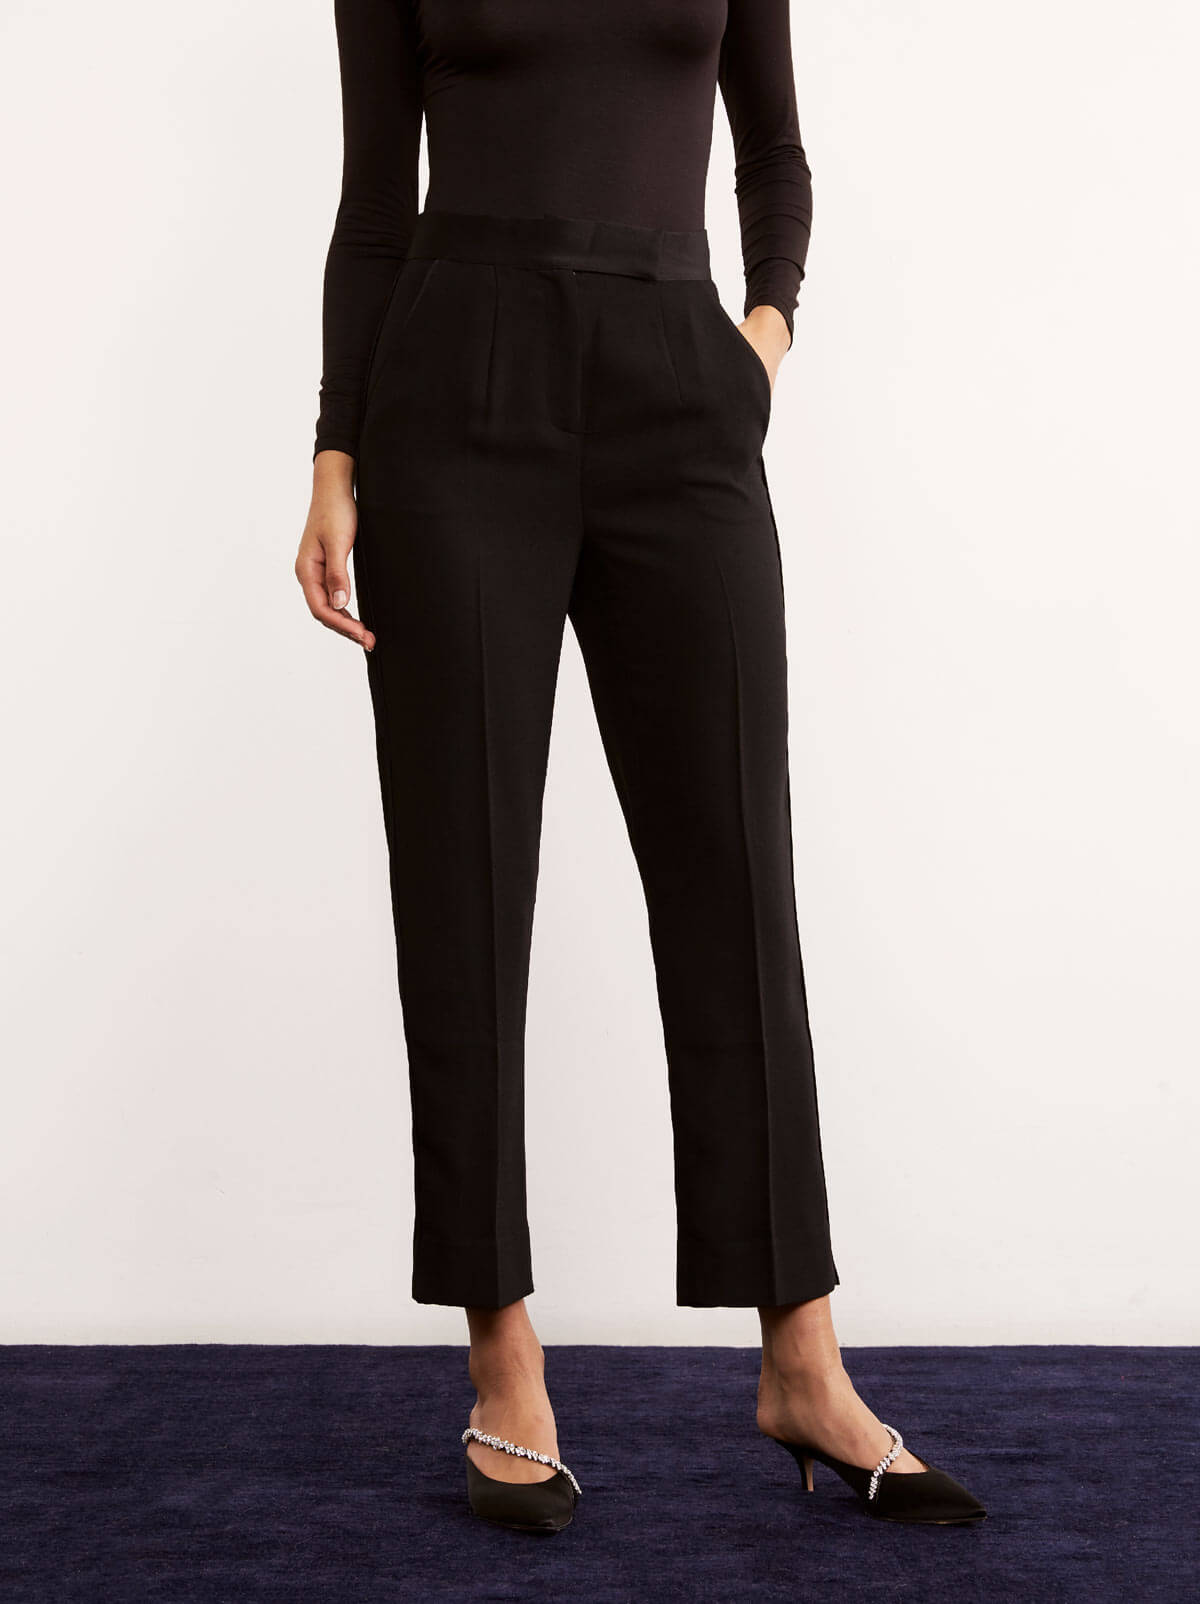 Claude Black Tailored Cigarette Trousers by KITRI Studio